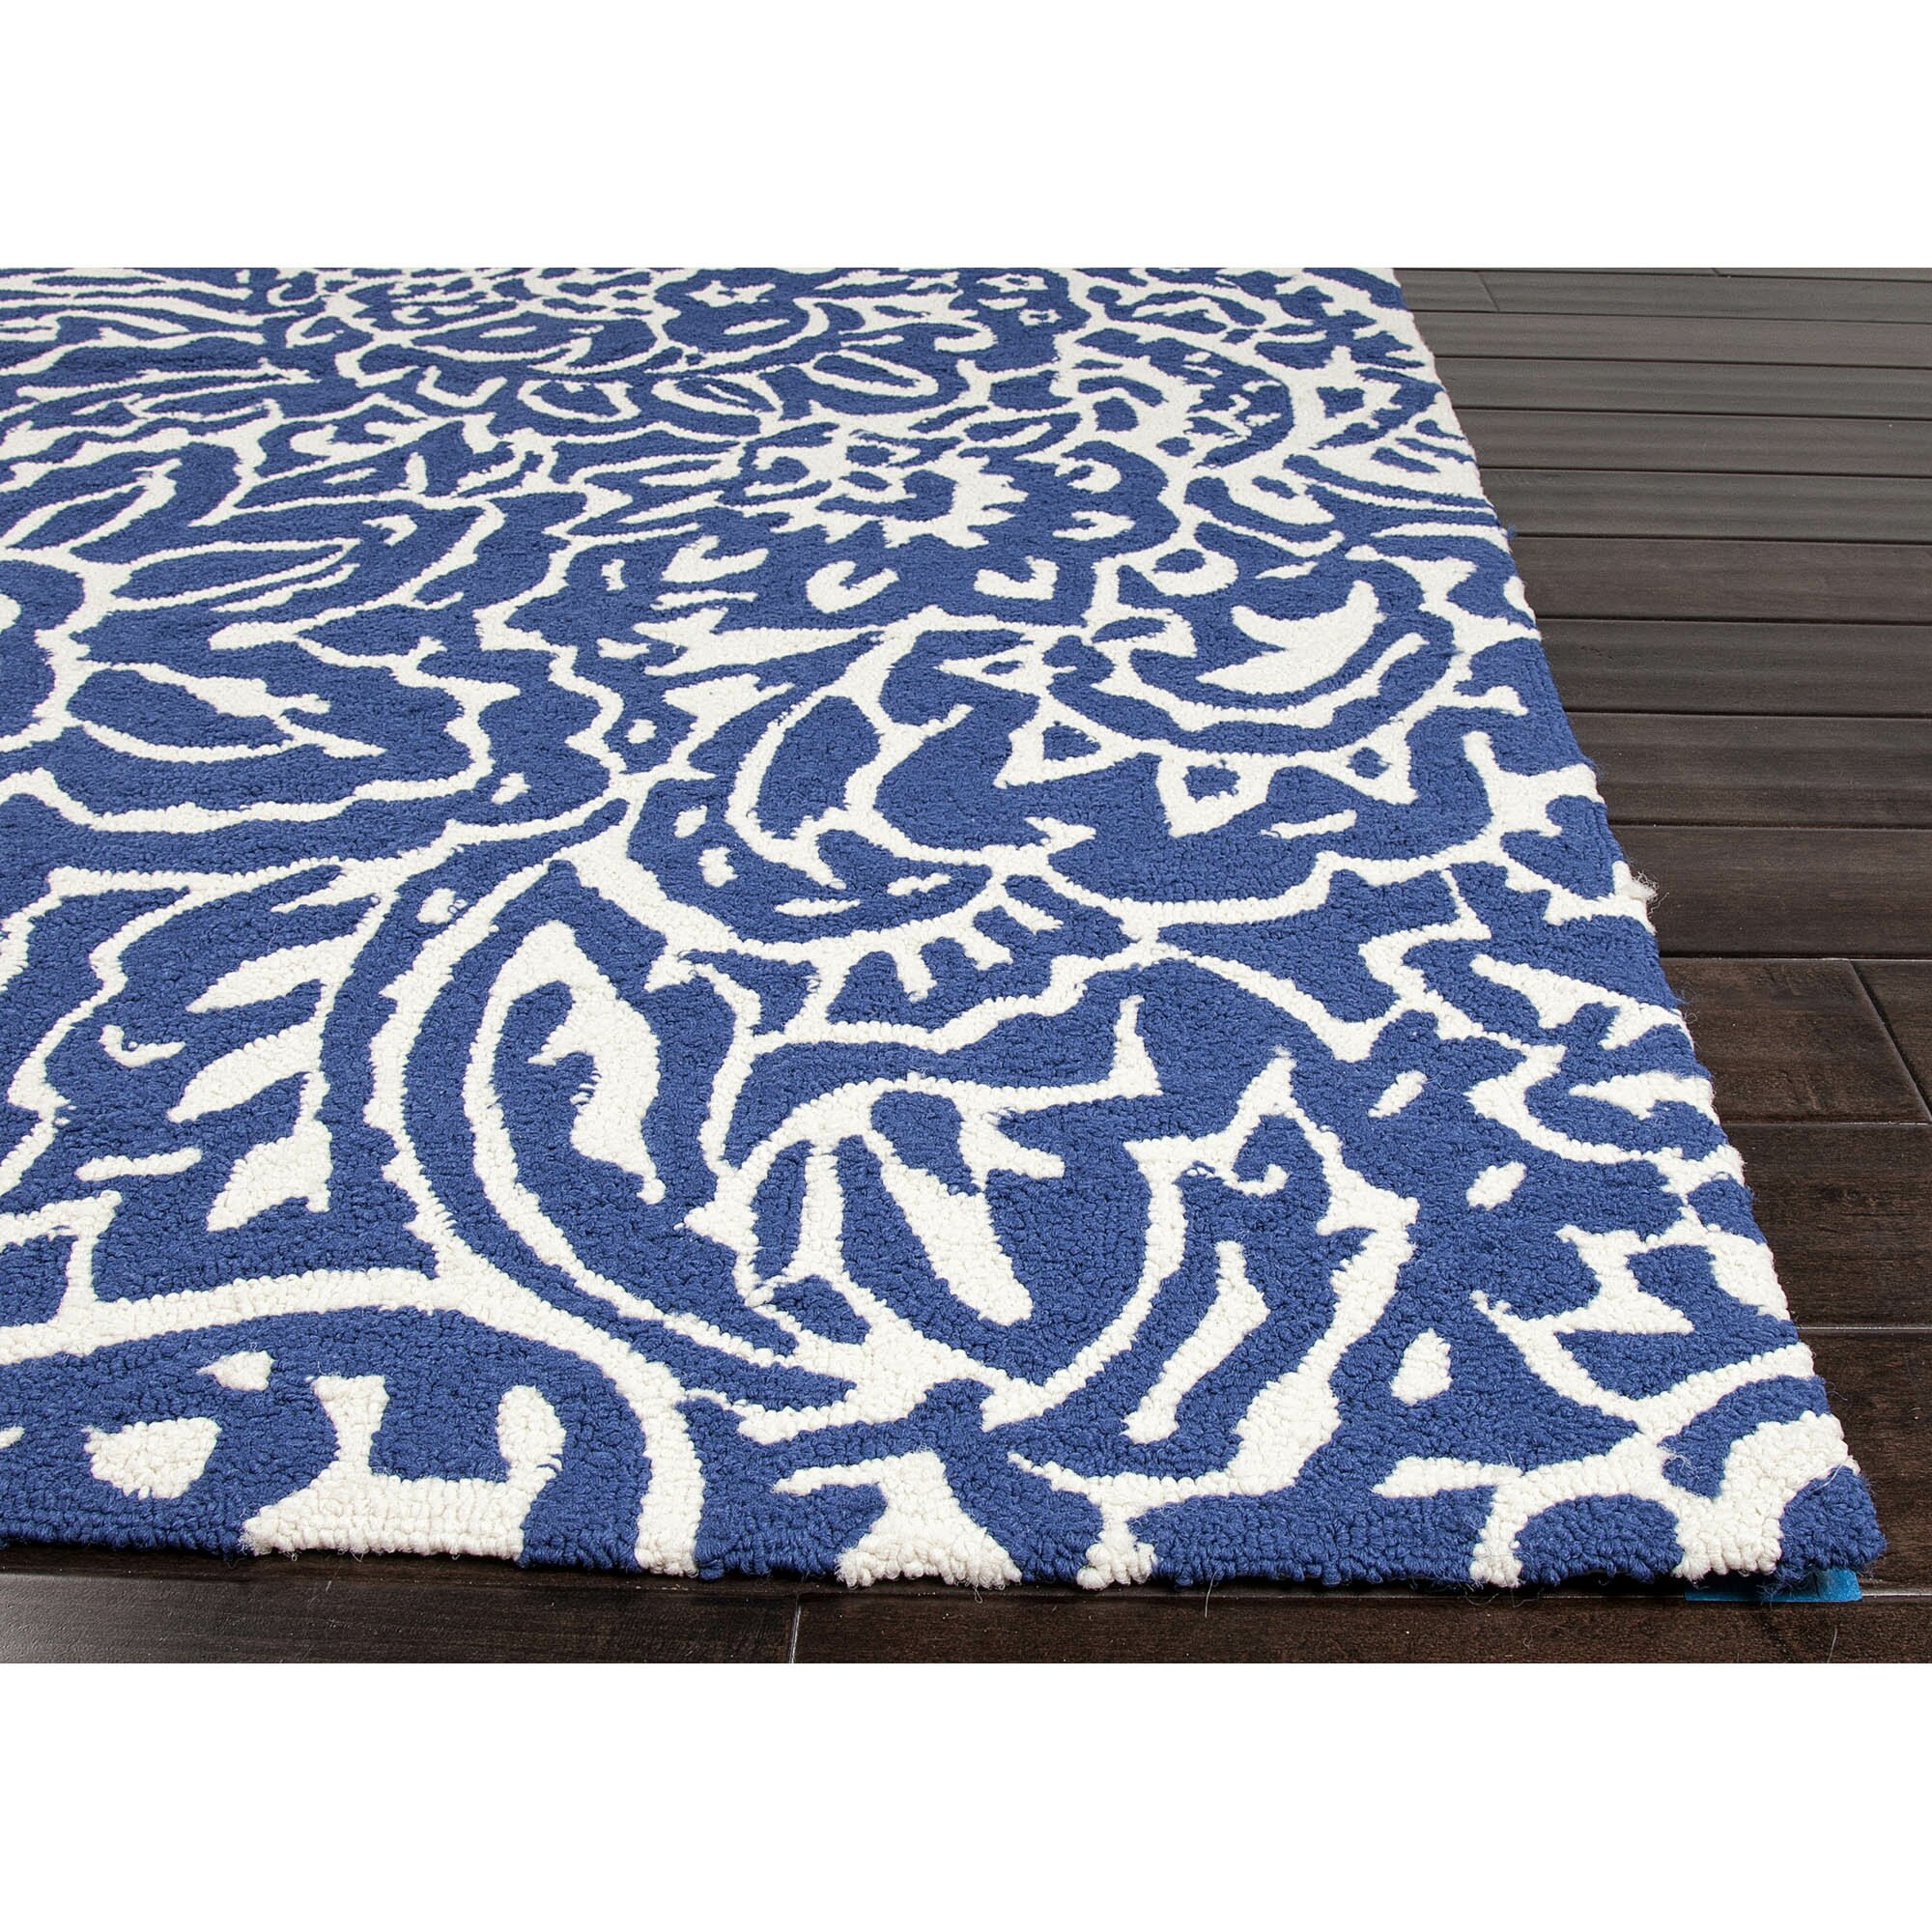 jaipurliving barcelona flores blue indoor outdoor area rug. Black Bedroom Furniture Sets. Home Design Ideas